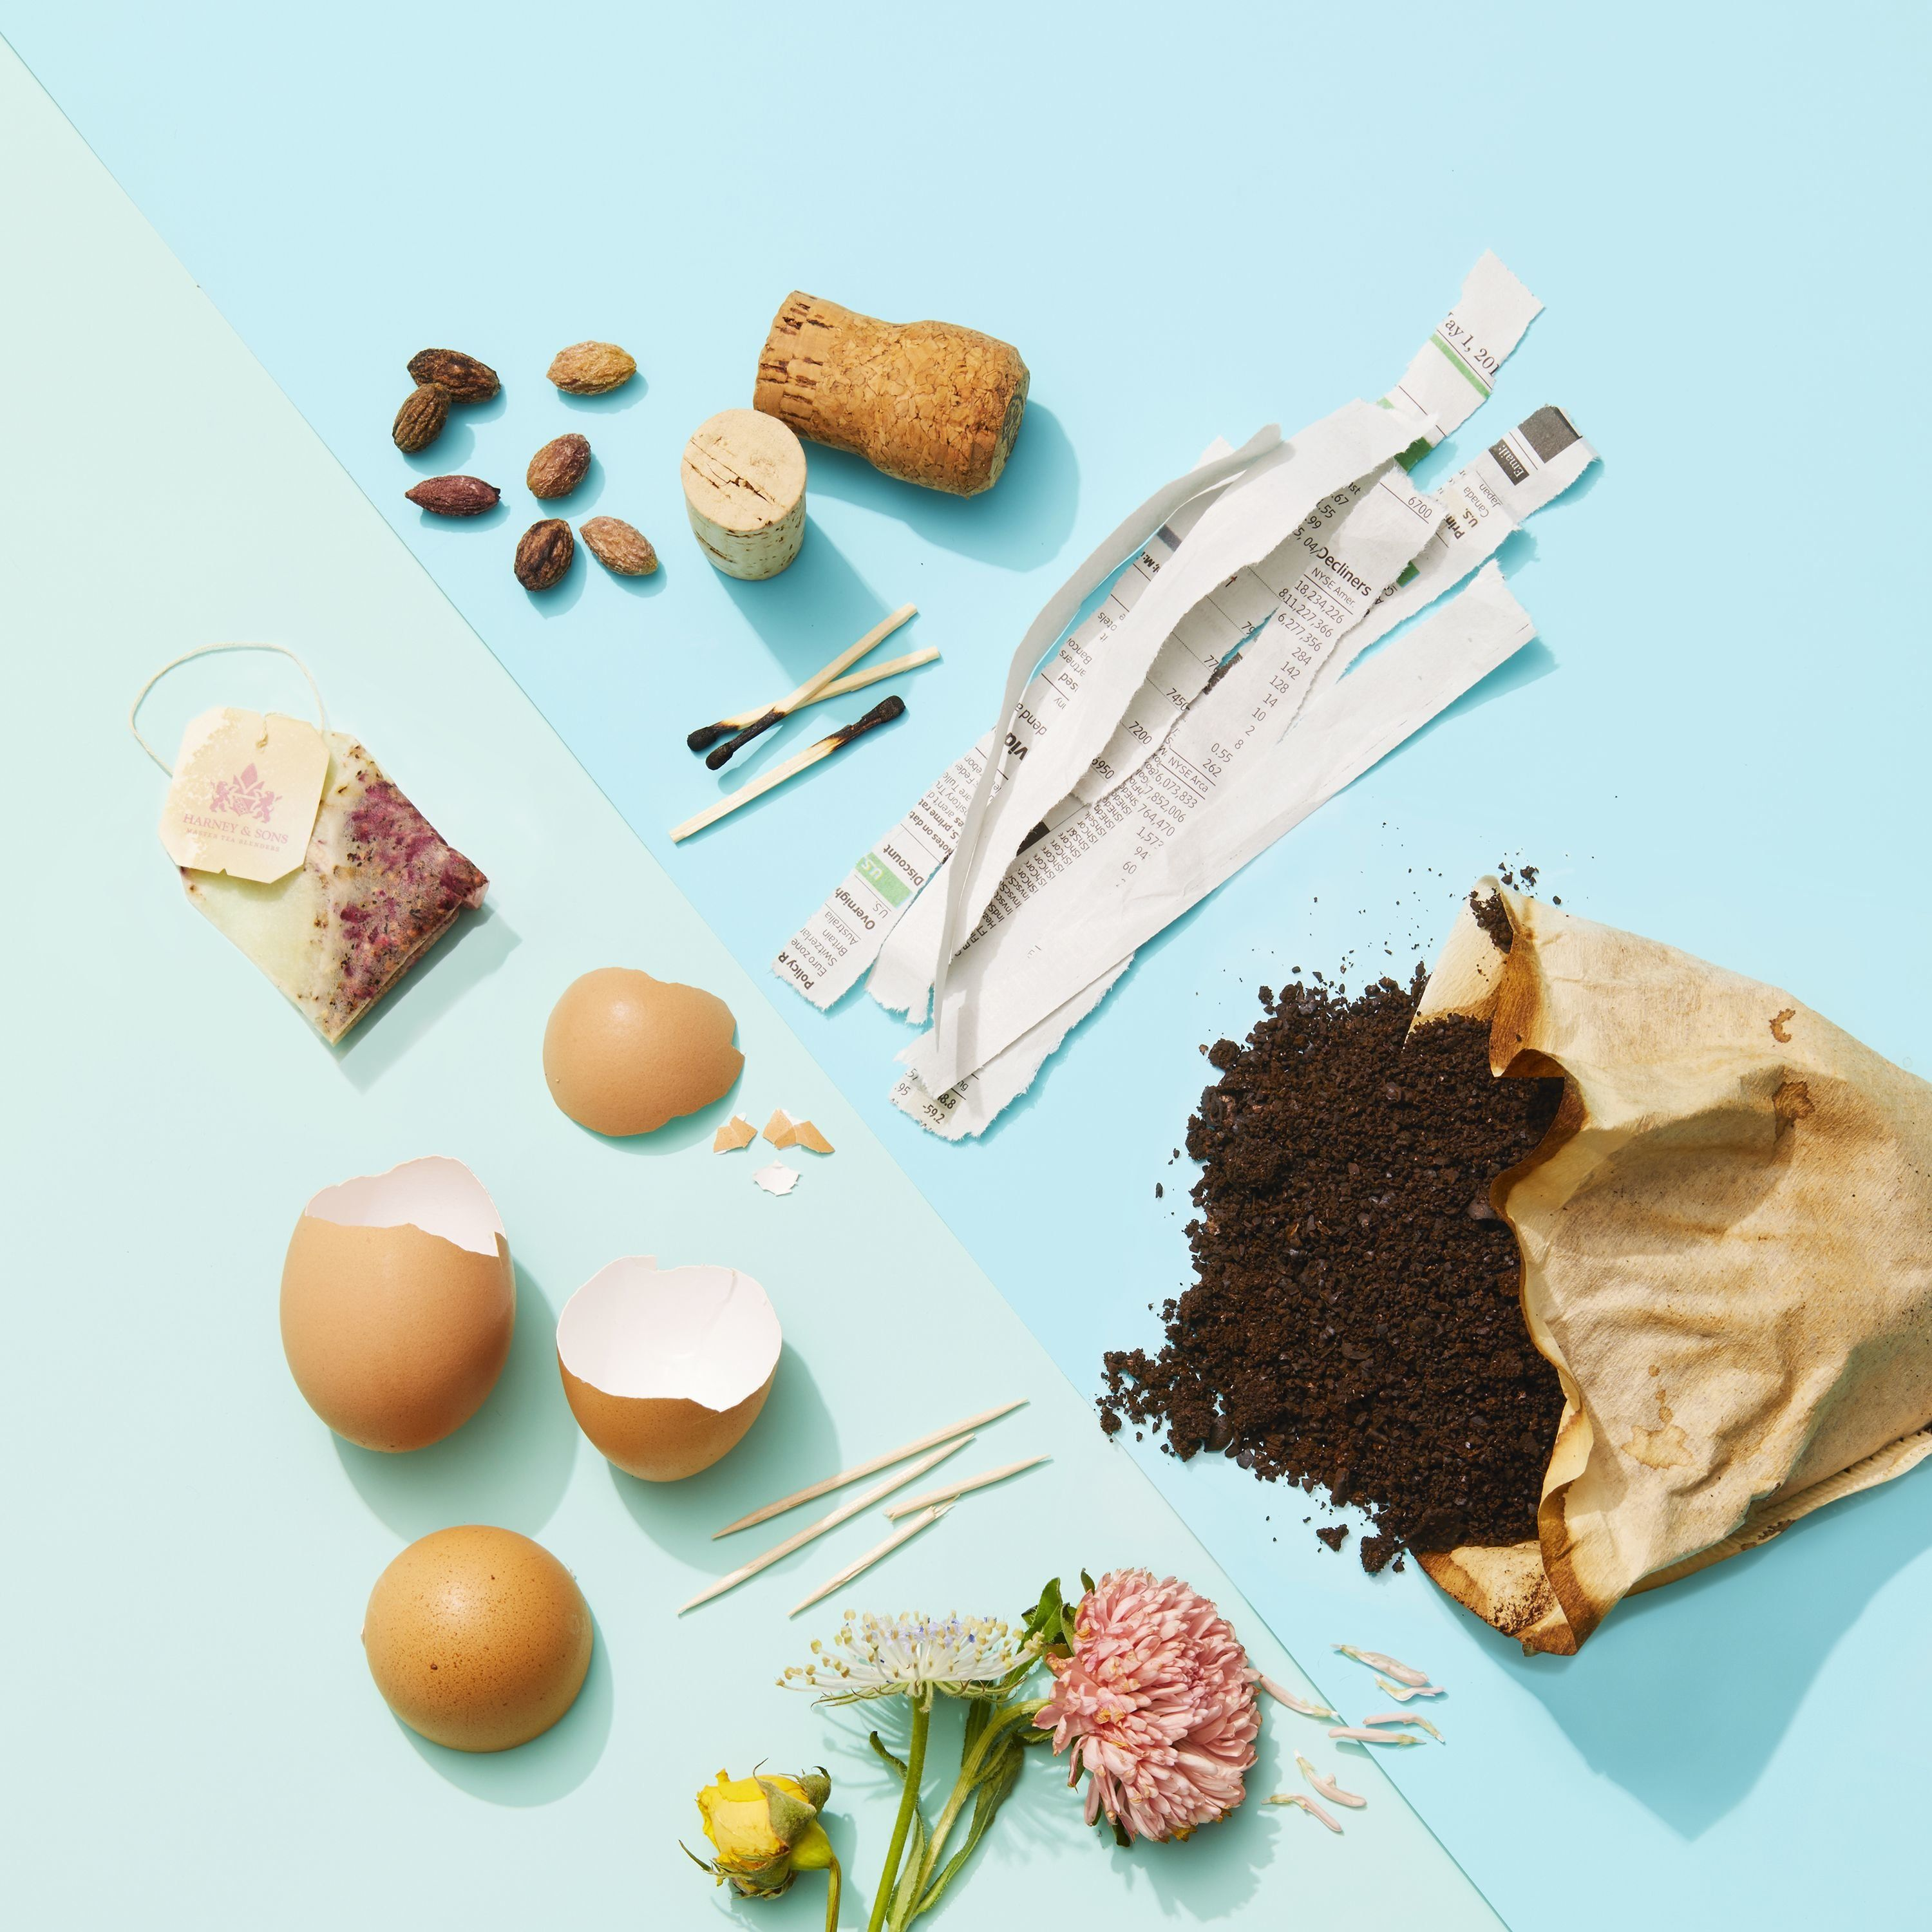 Let's Talk Dirty: Why Composting Saves Money and The Environment